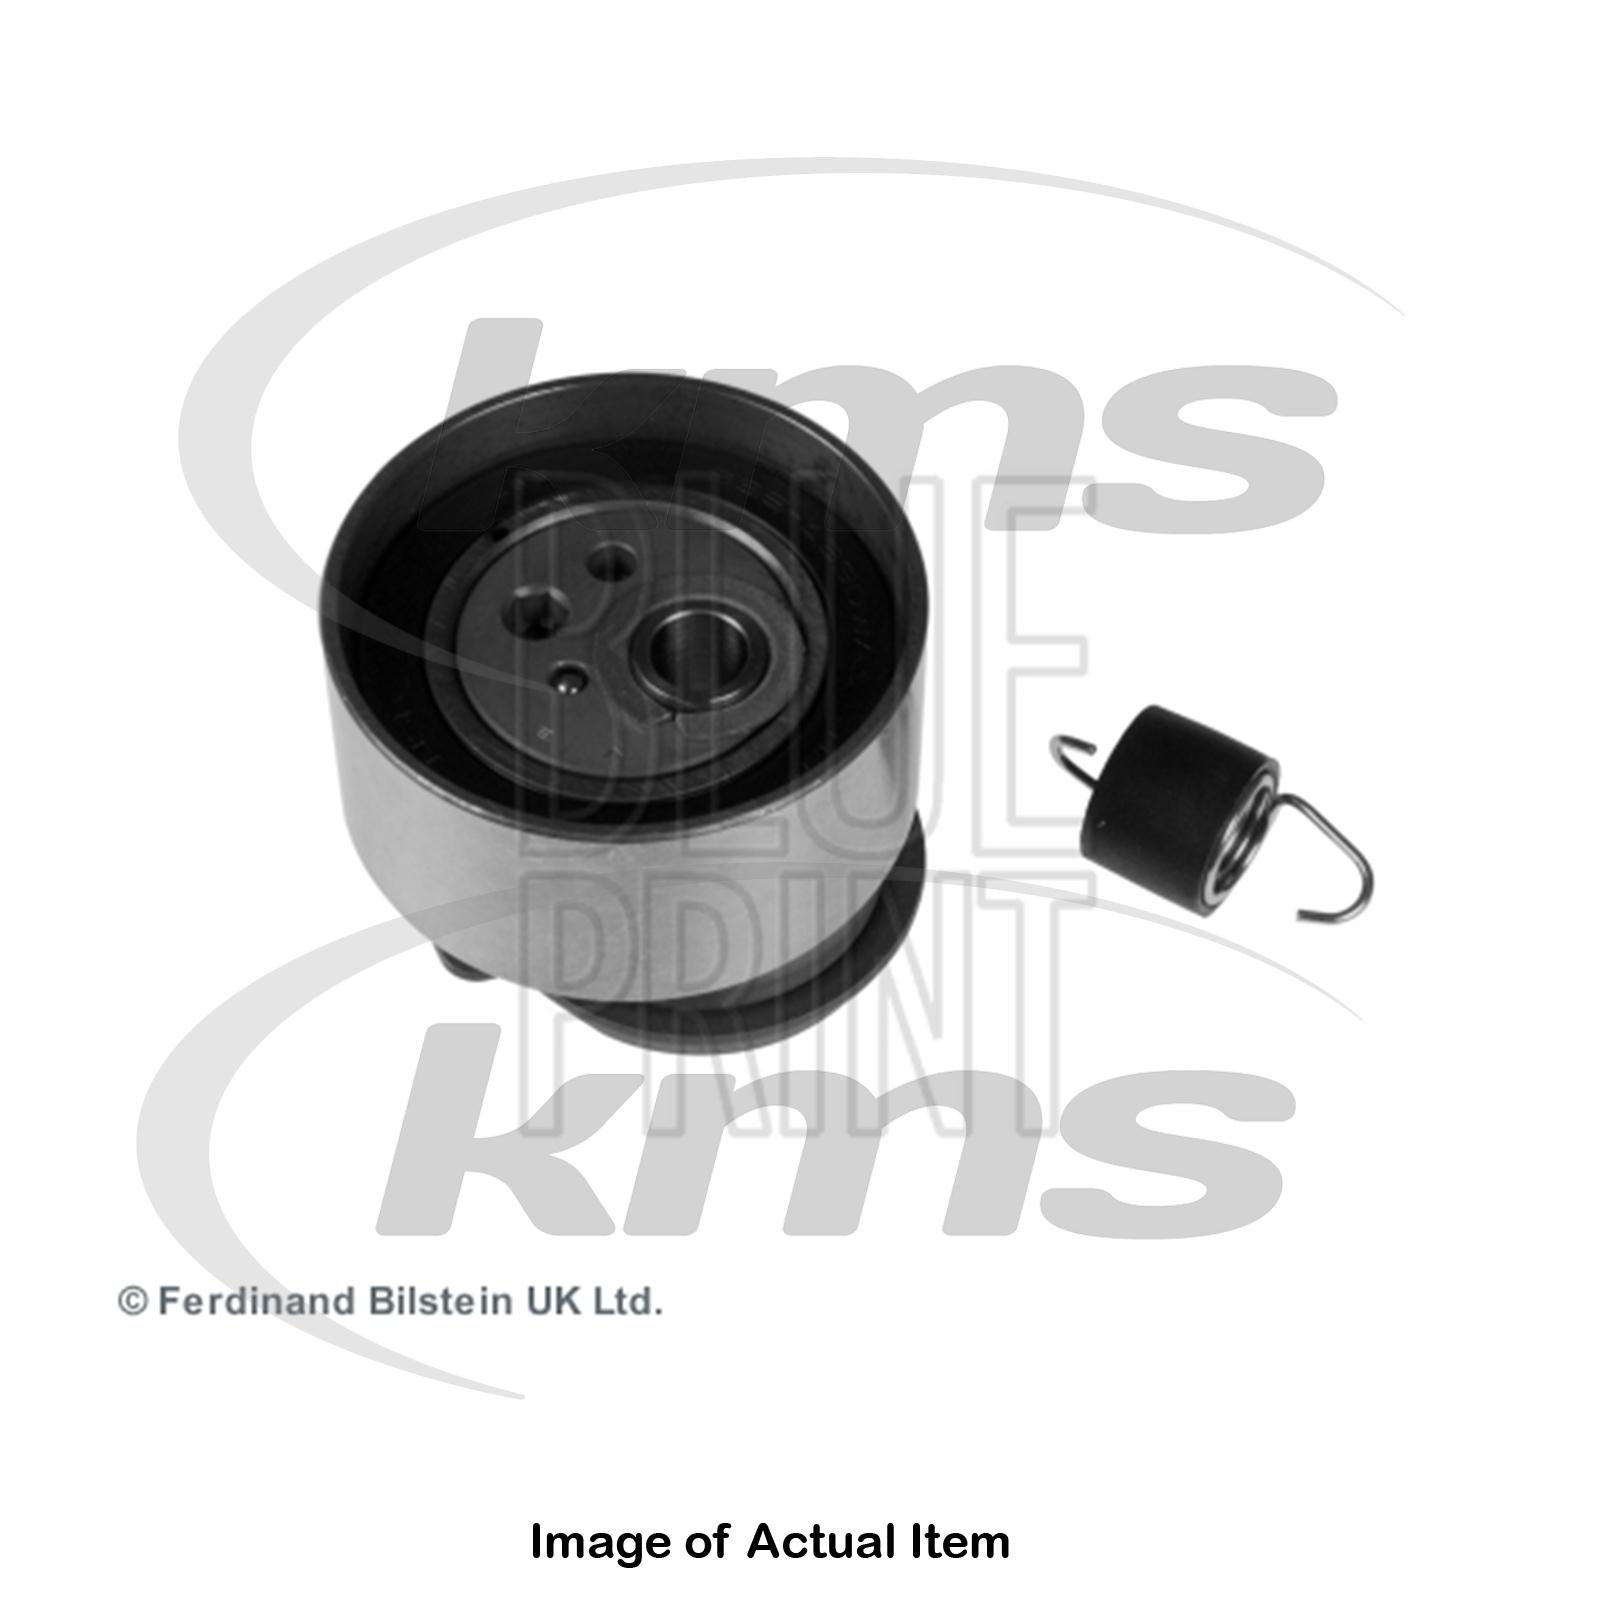 New Genuine Blue Print Timing Cam Belt Tensioner Pulley Adm57616 Top On All Engines Except Vtec The Adjuster Arm Must Be Locked In Sentinel Quality 3yrs No Quibble Warranty